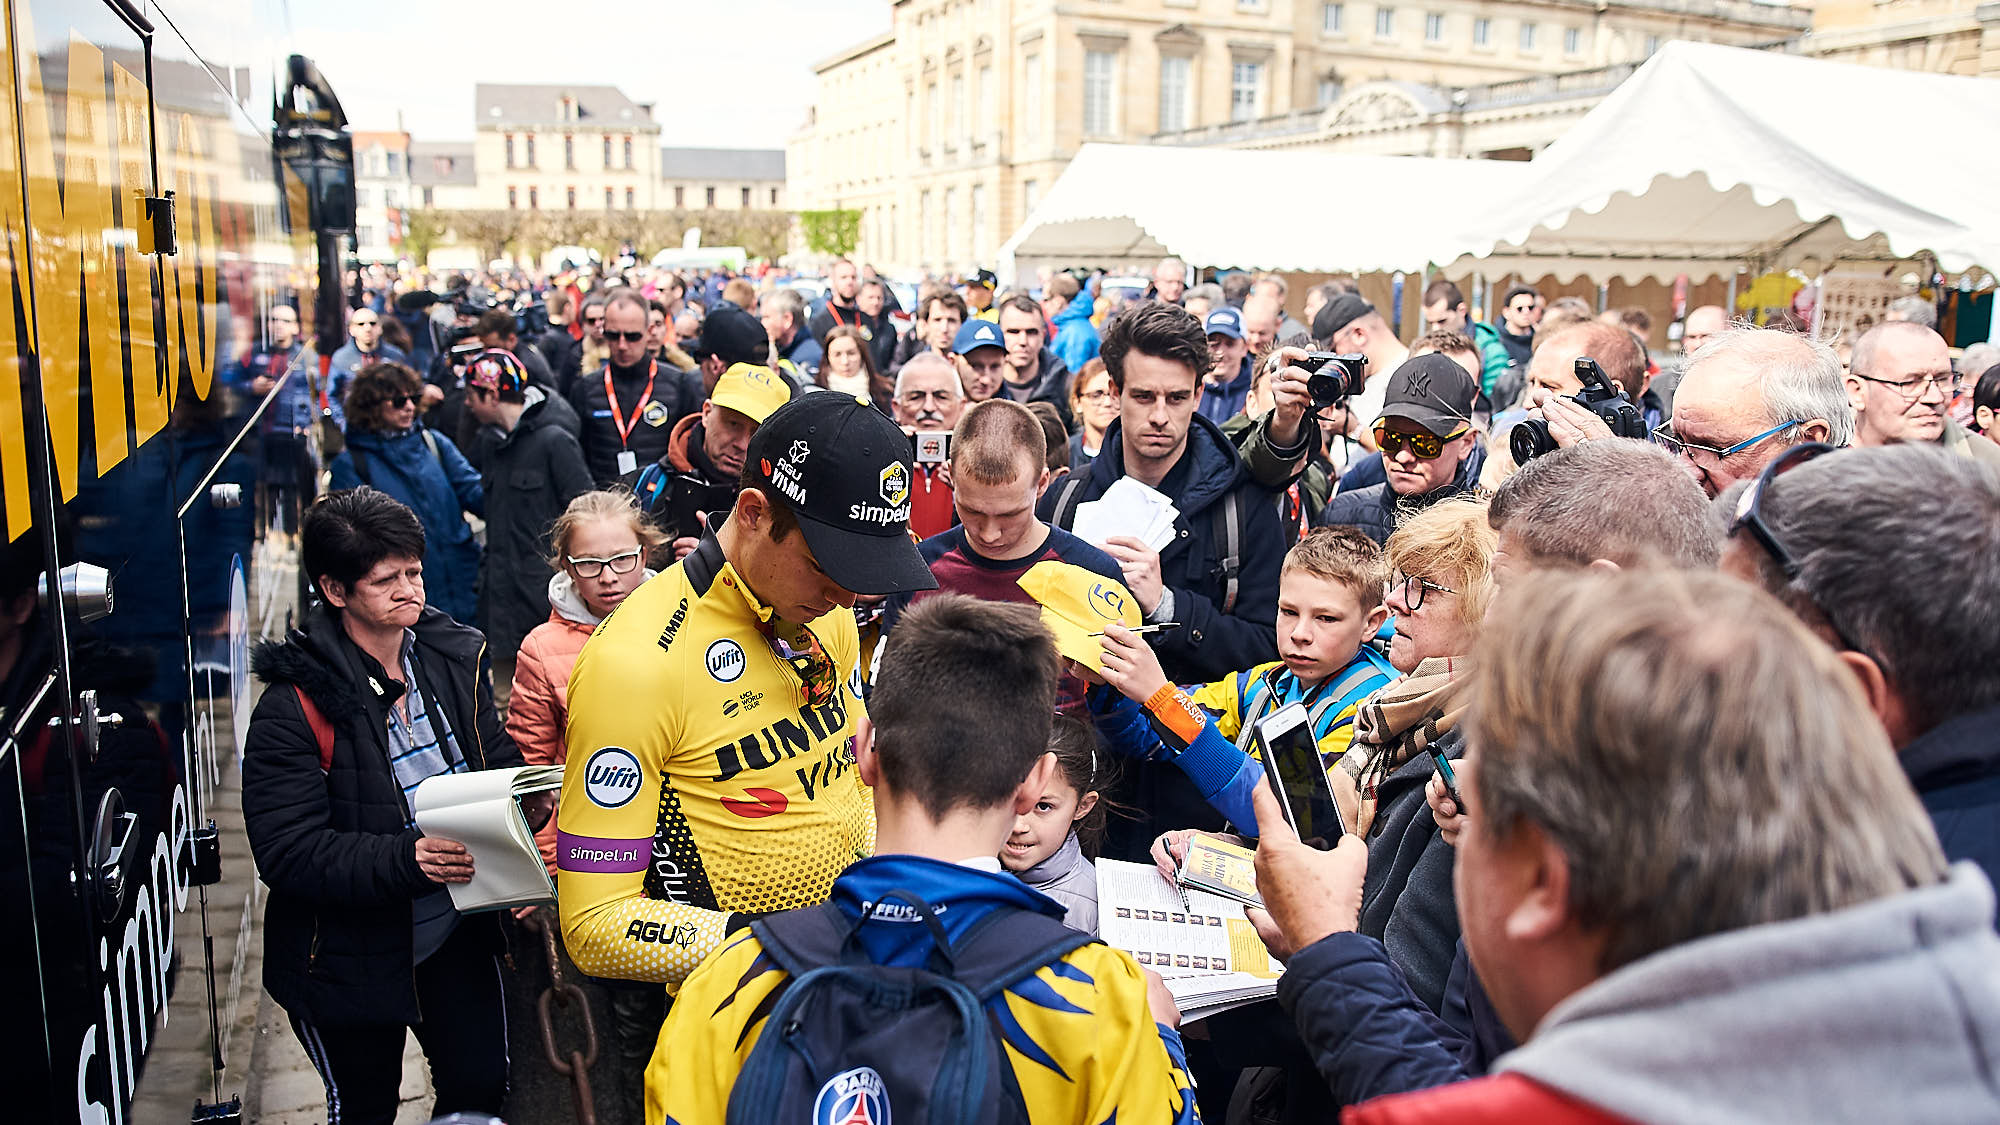 Wout van Aert outside the Jumbo-Visma team bus before Paris-Roubaix